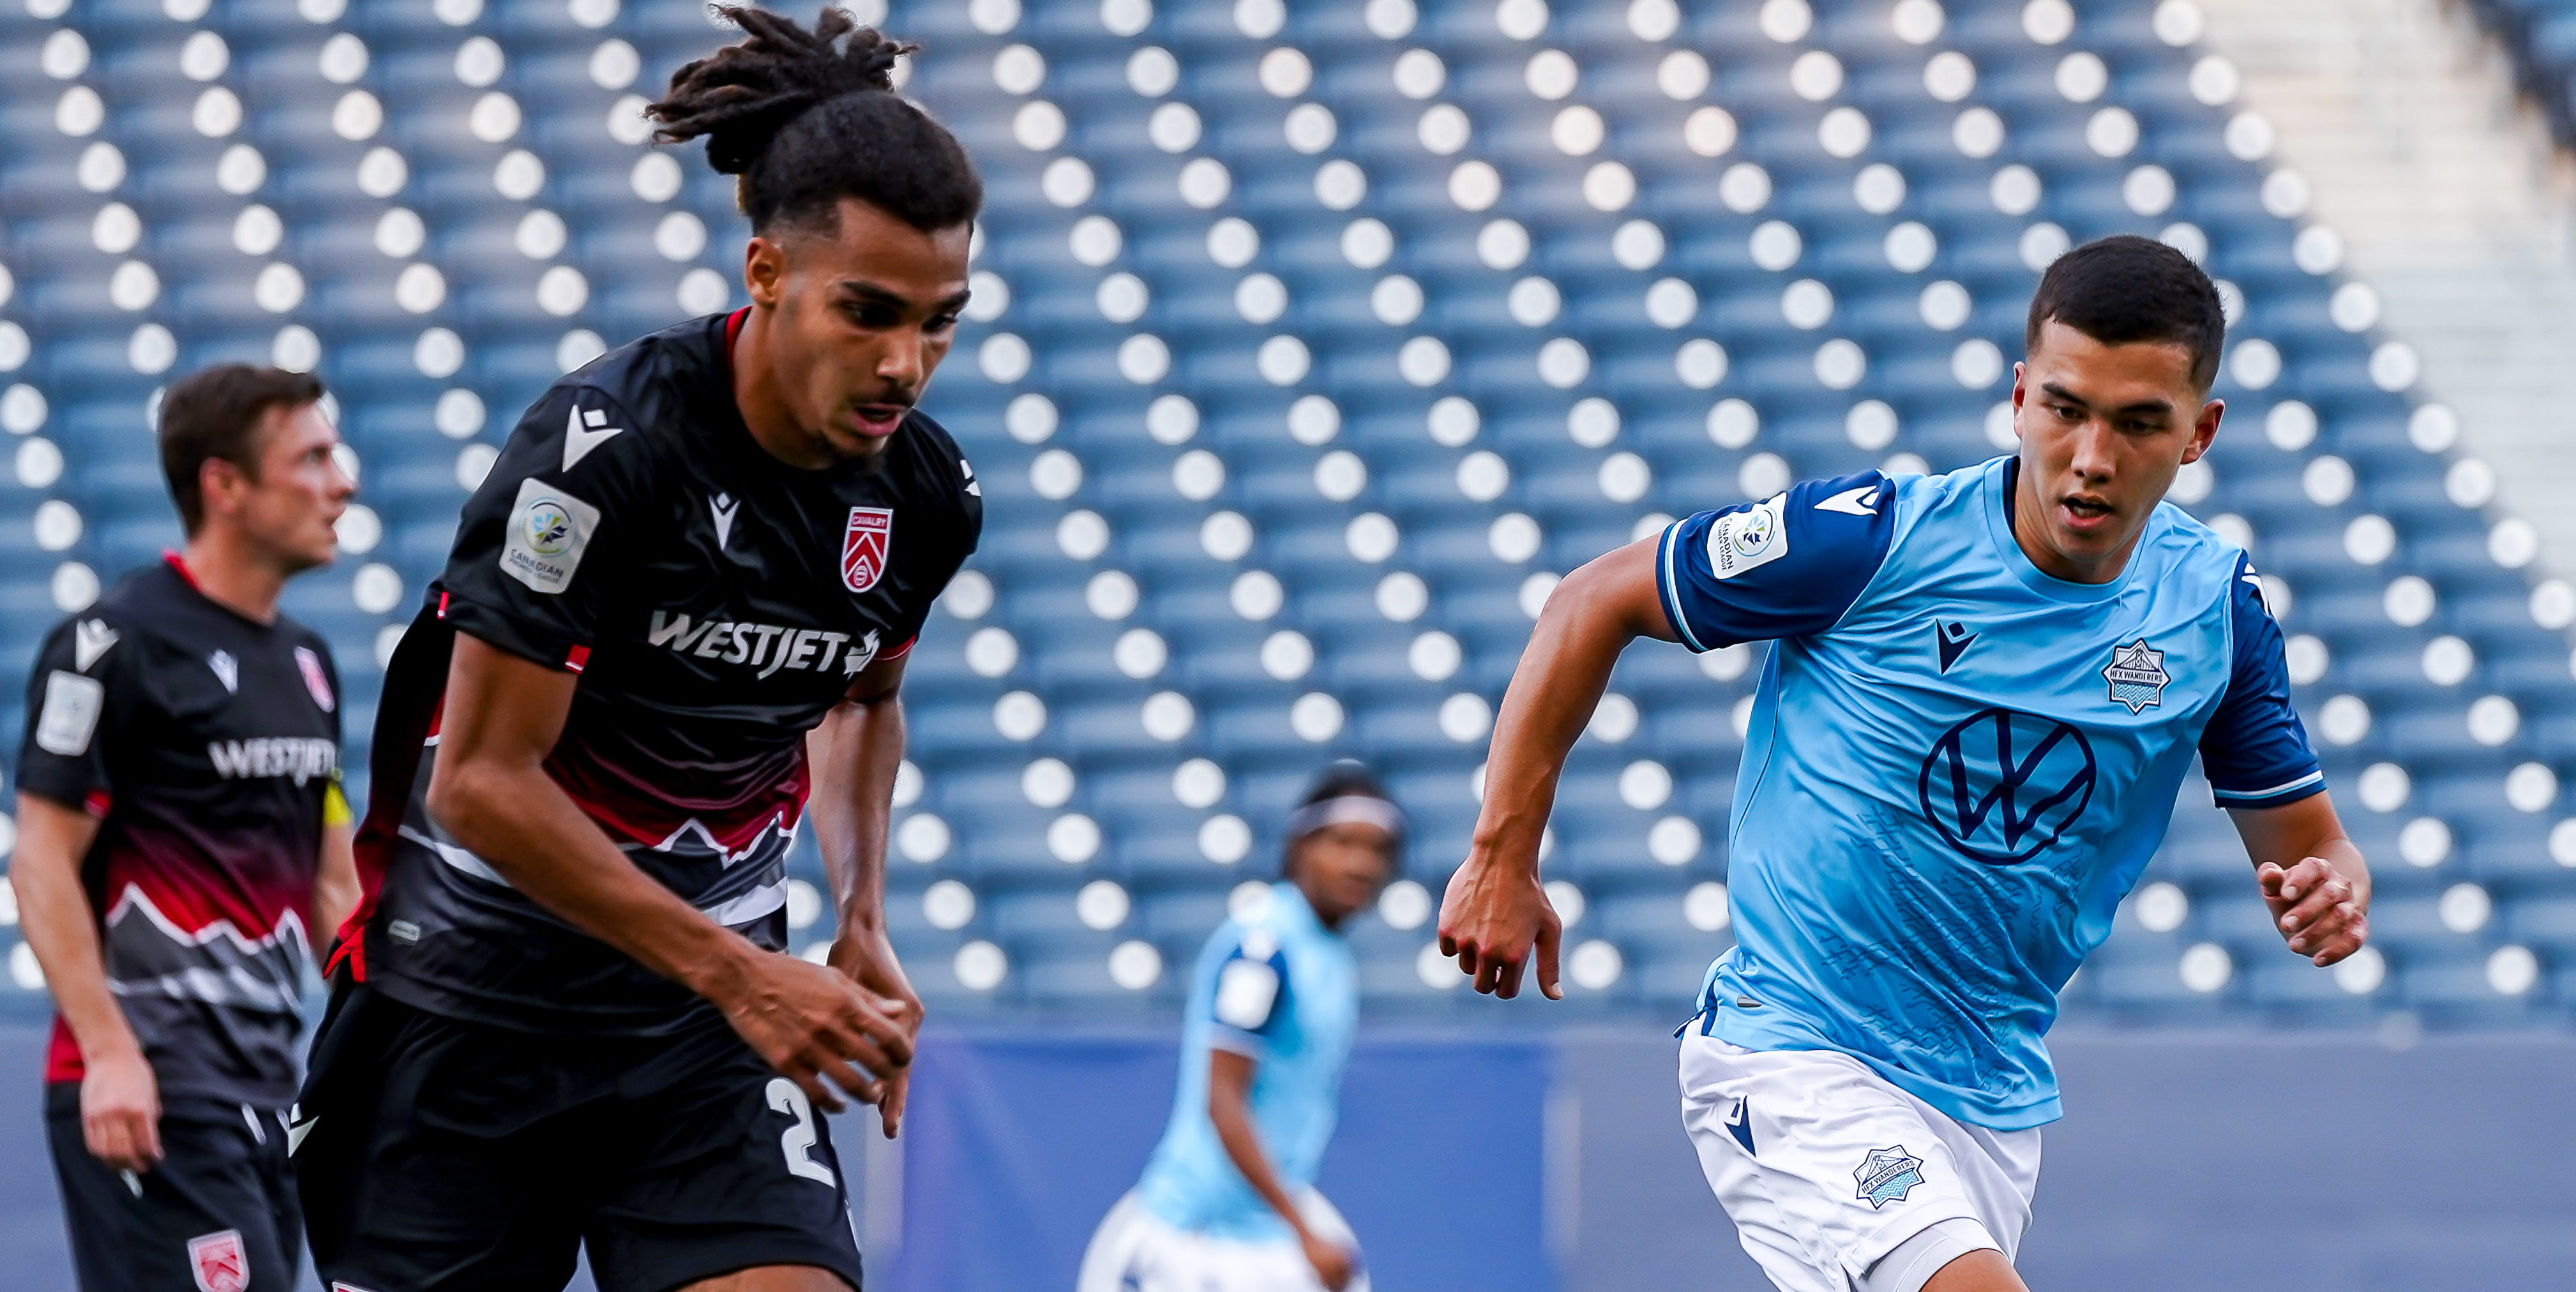 July 17, 2021. HFX Wanderers FC vs Cavalry FC. First-Half. Mohamed Farsi of Cavalry FC and Pierre Lamothe of HFX Wanderers FC chase the loose ball. (CPL)